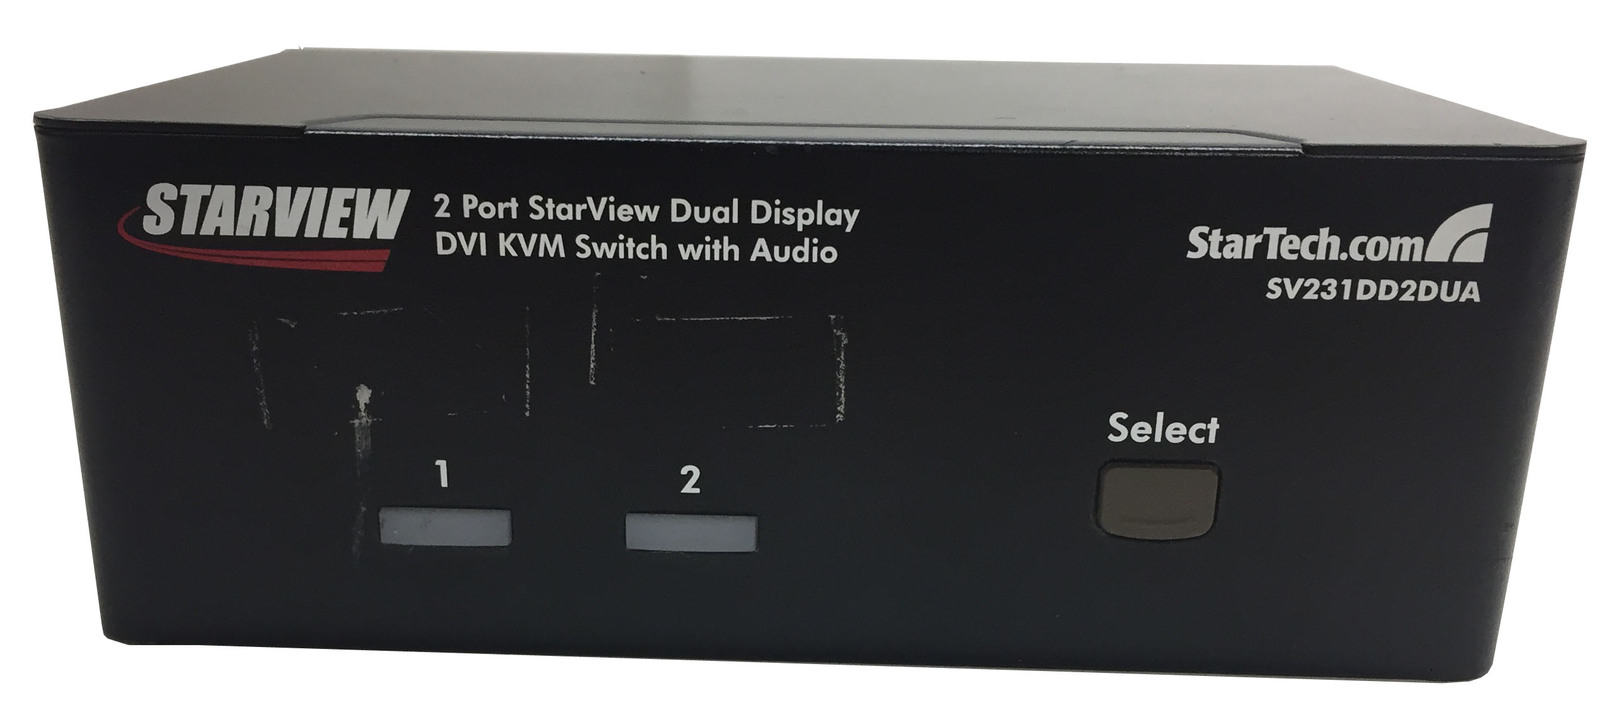 Starview 2 port dvi switch 2